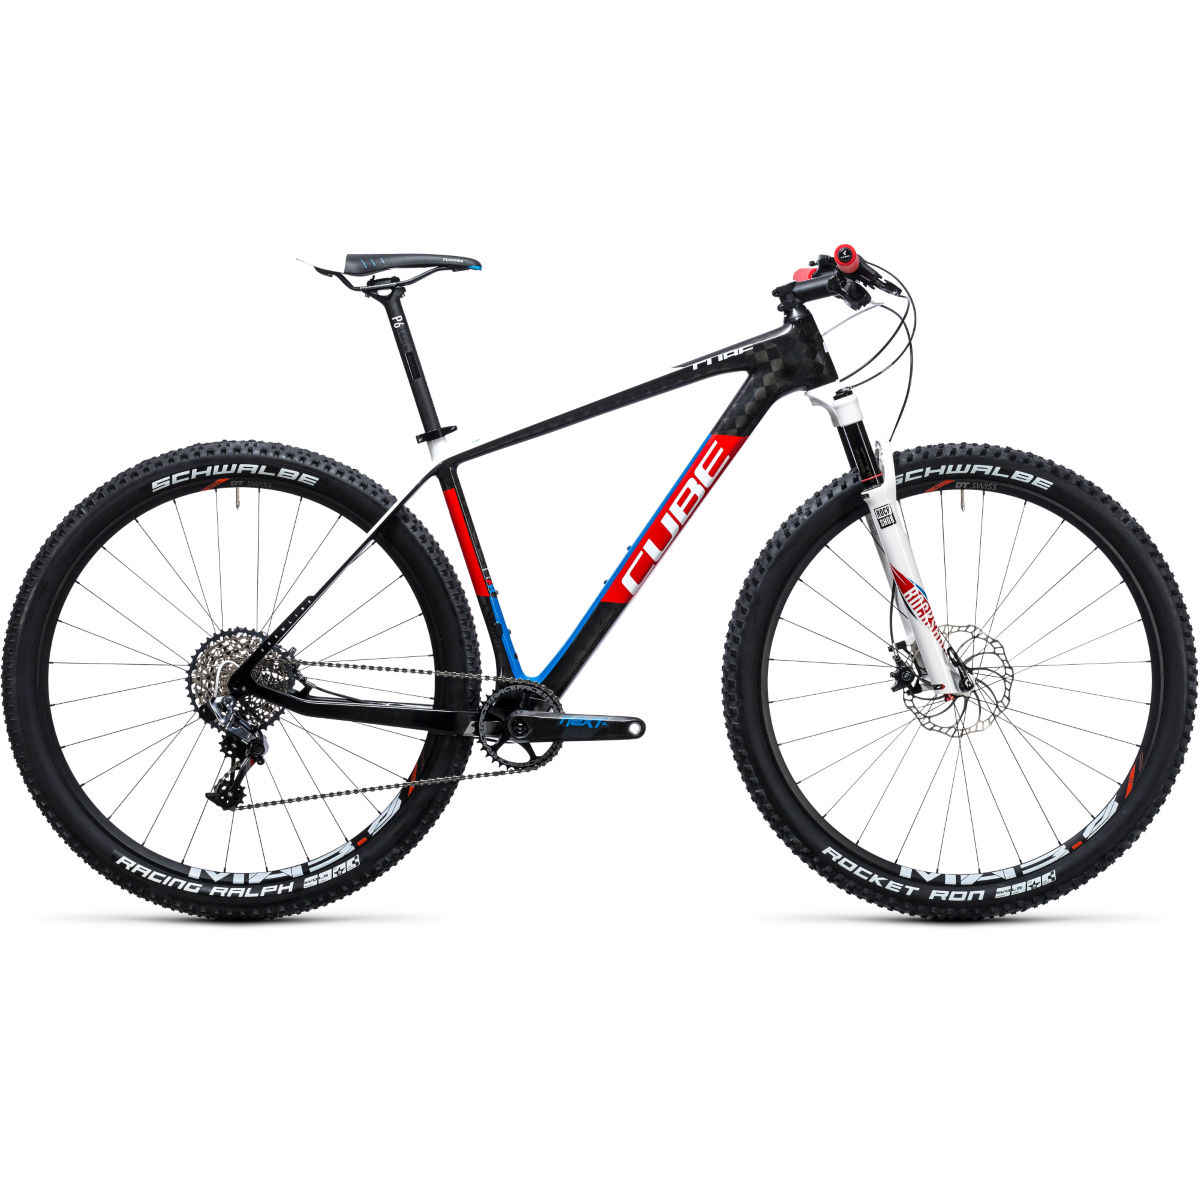 VTT semi-rigide Cube Elite C:68 SL 29 pouces - 23'' Stock Bike